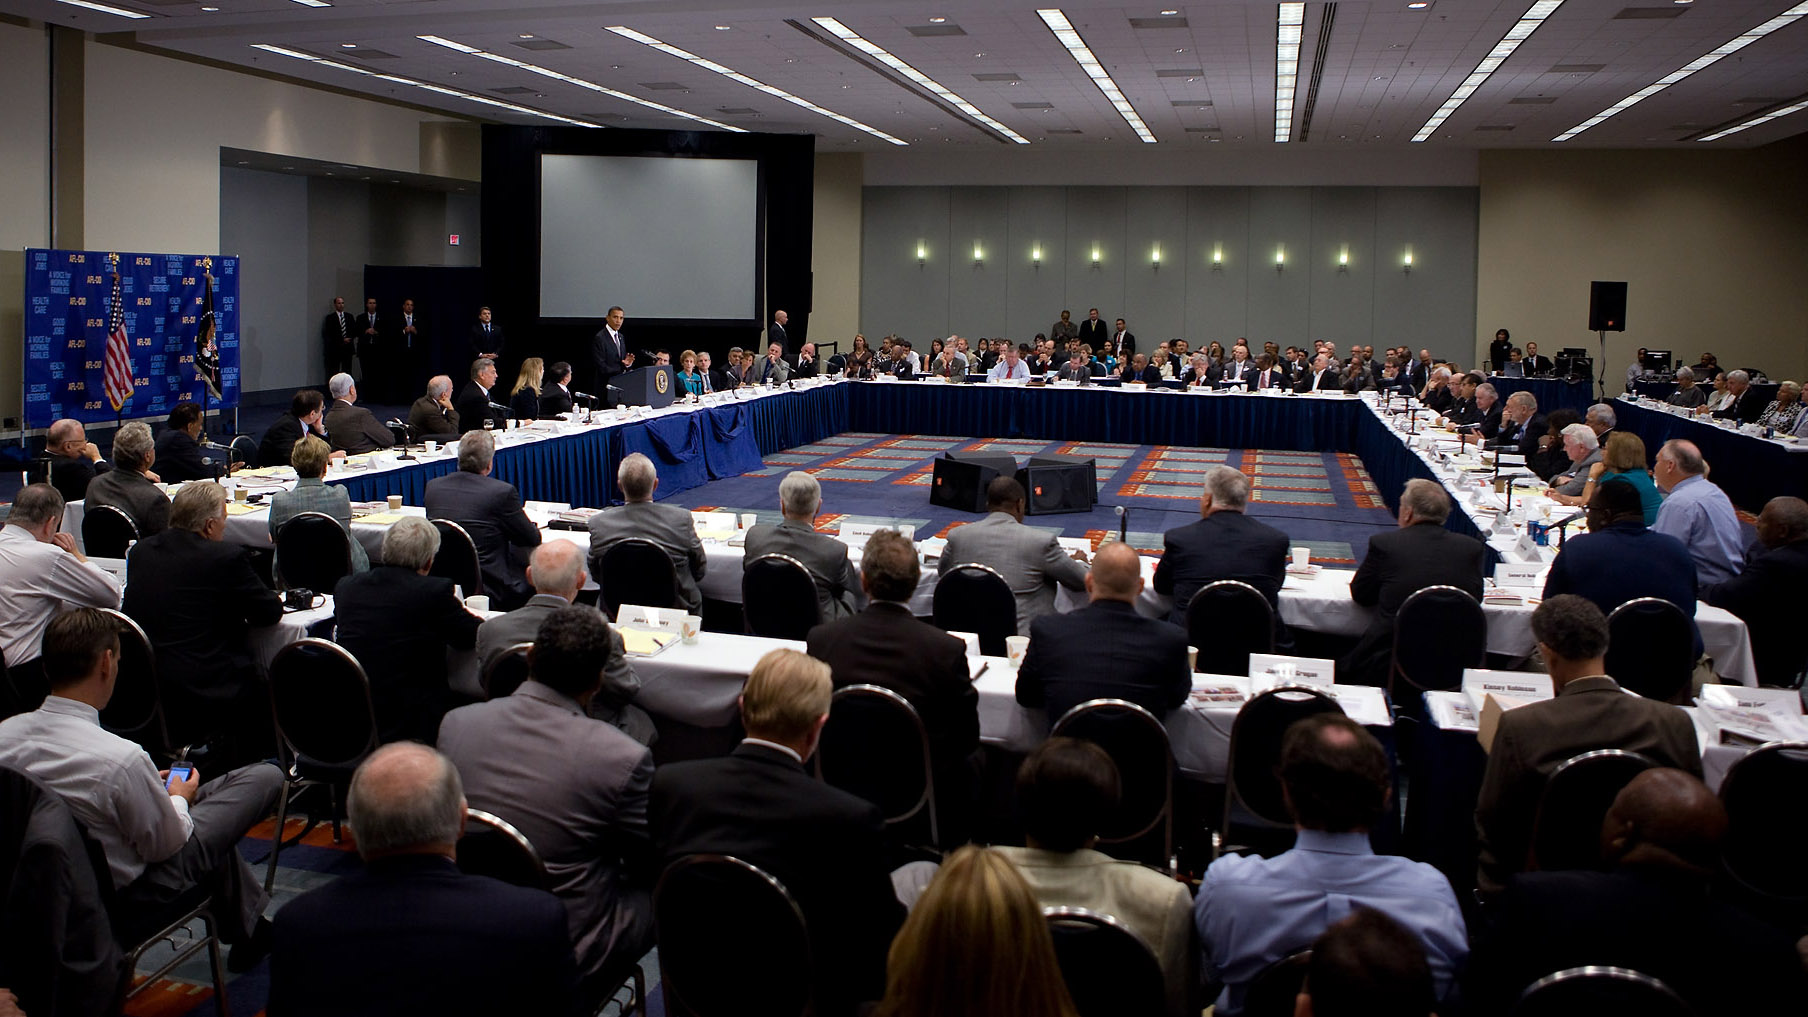 President Barack Obama Delivers Remarks to the AFL-CIO Executive Council Meeting